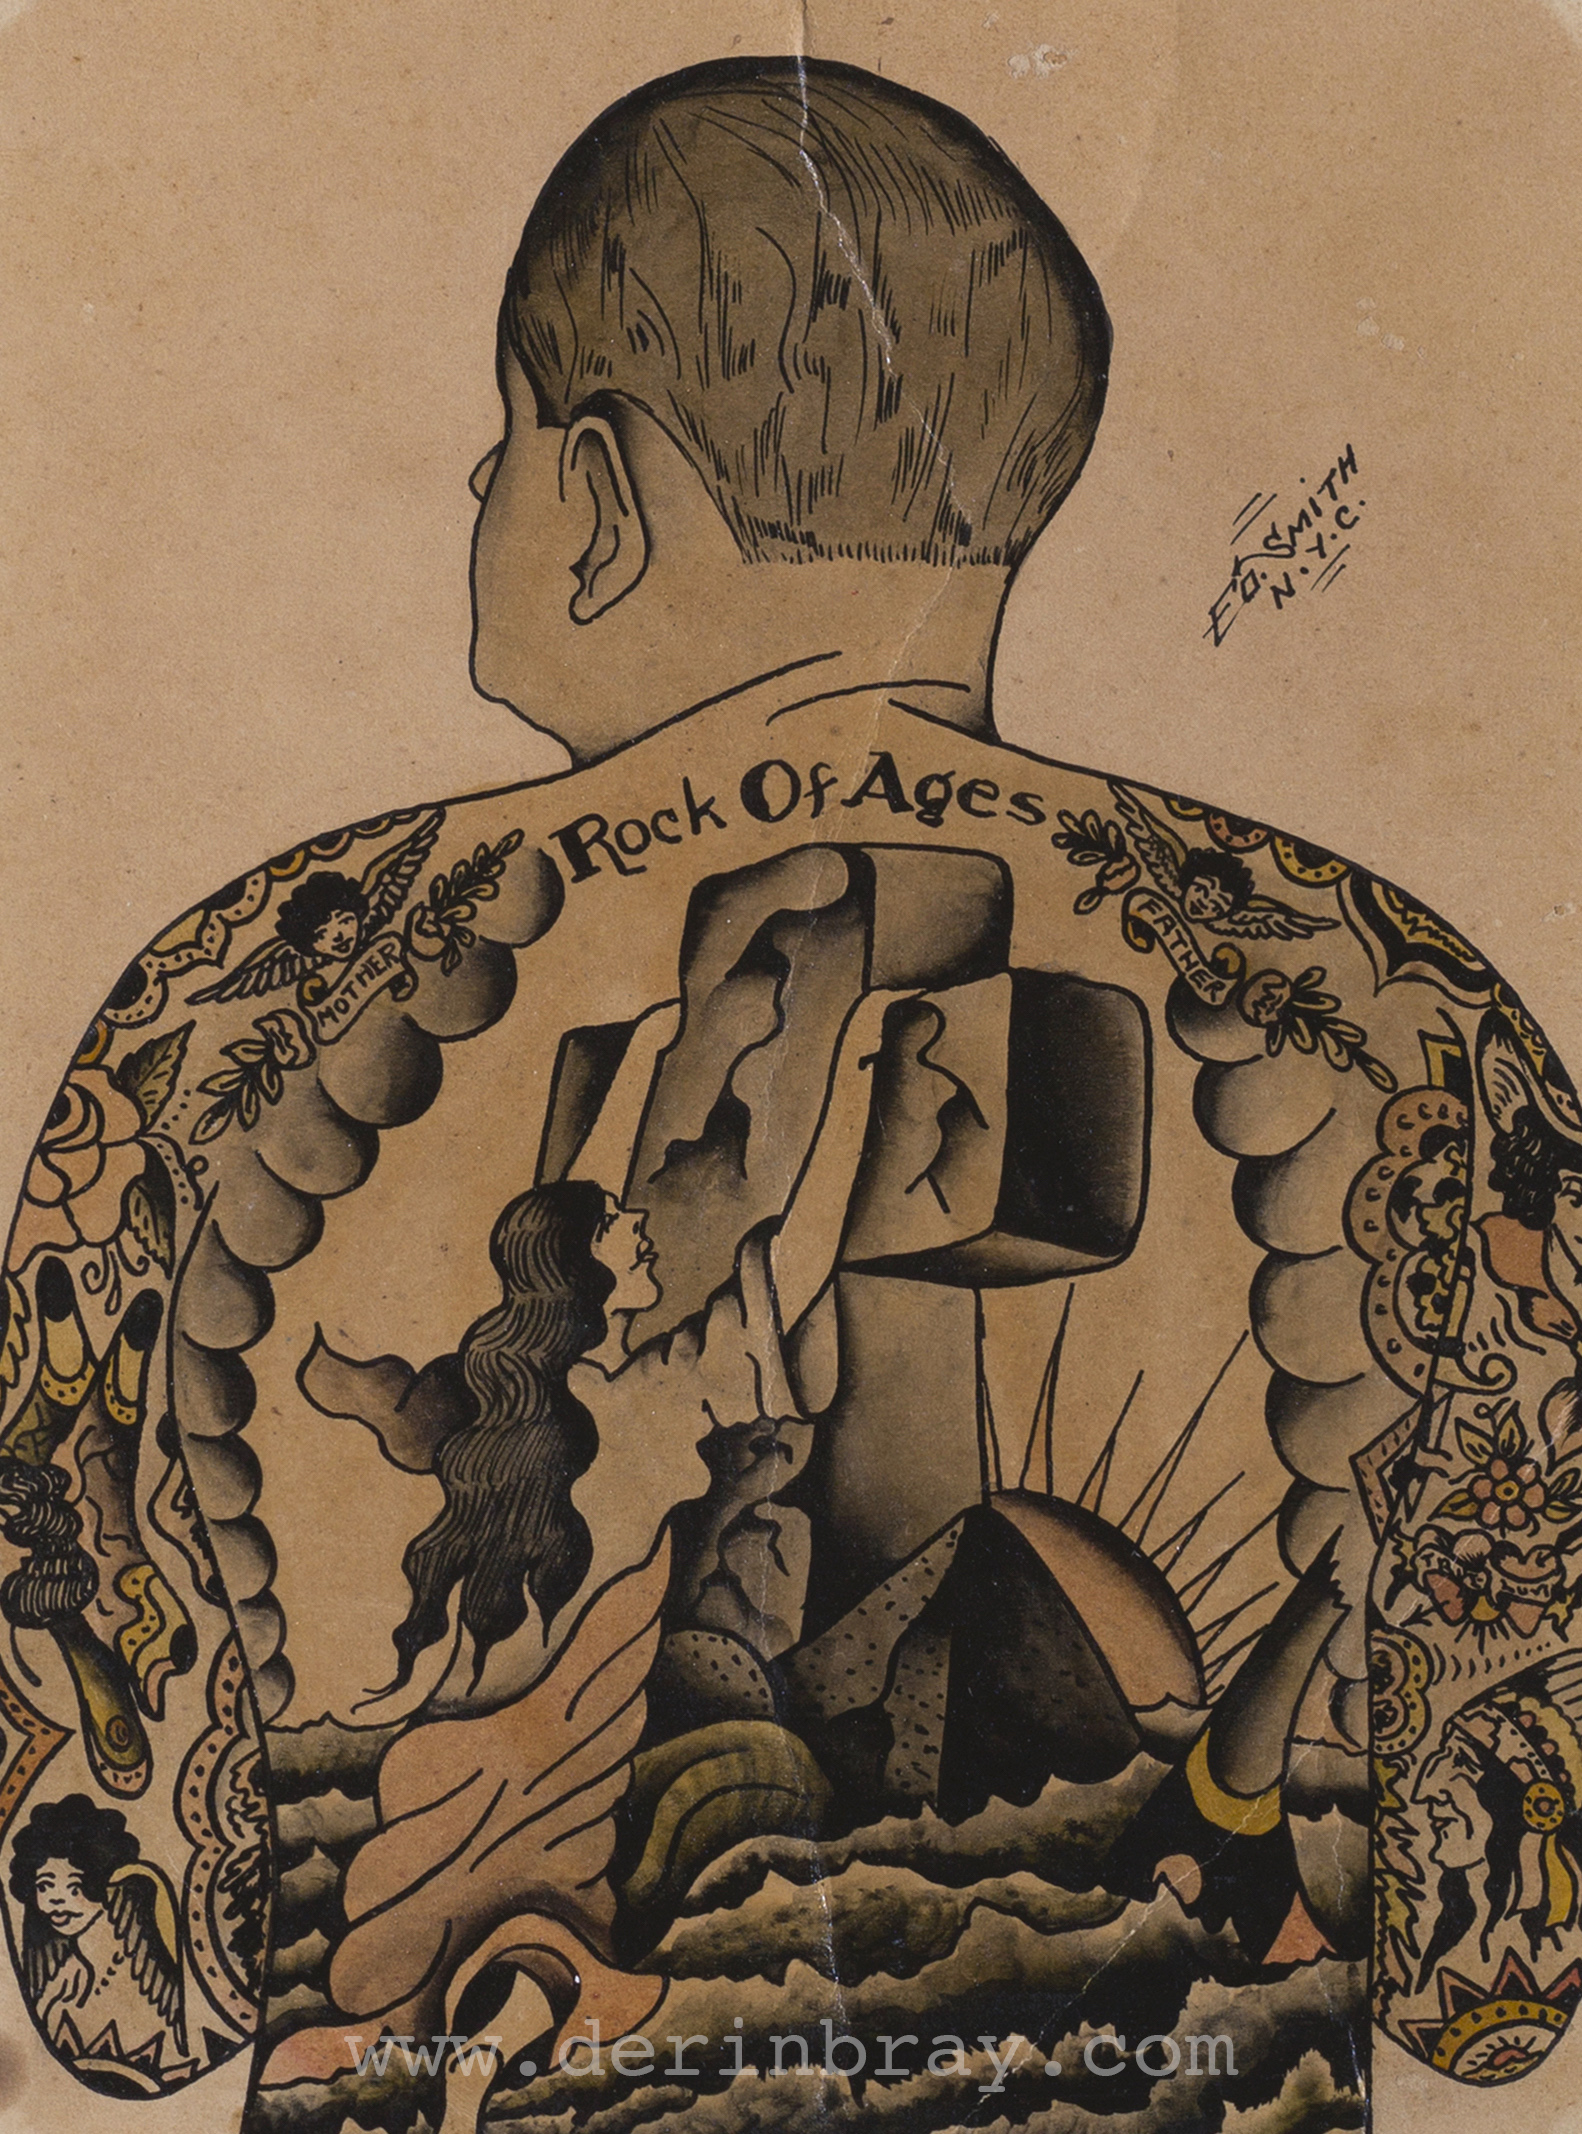 Self-Portrait Tattoo Flash, Painted by Ed Smith, NYC, ca. 1930